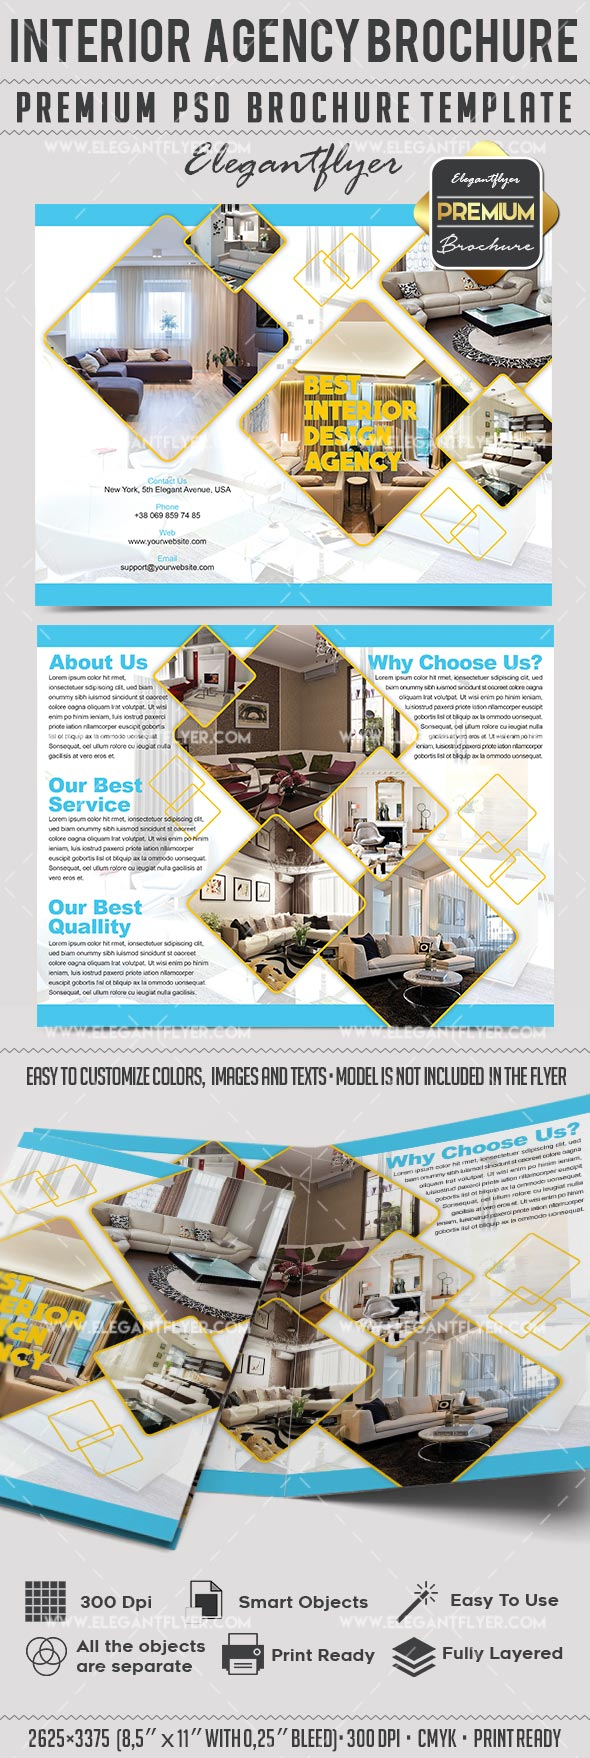 Brochure Template for Interior Agency